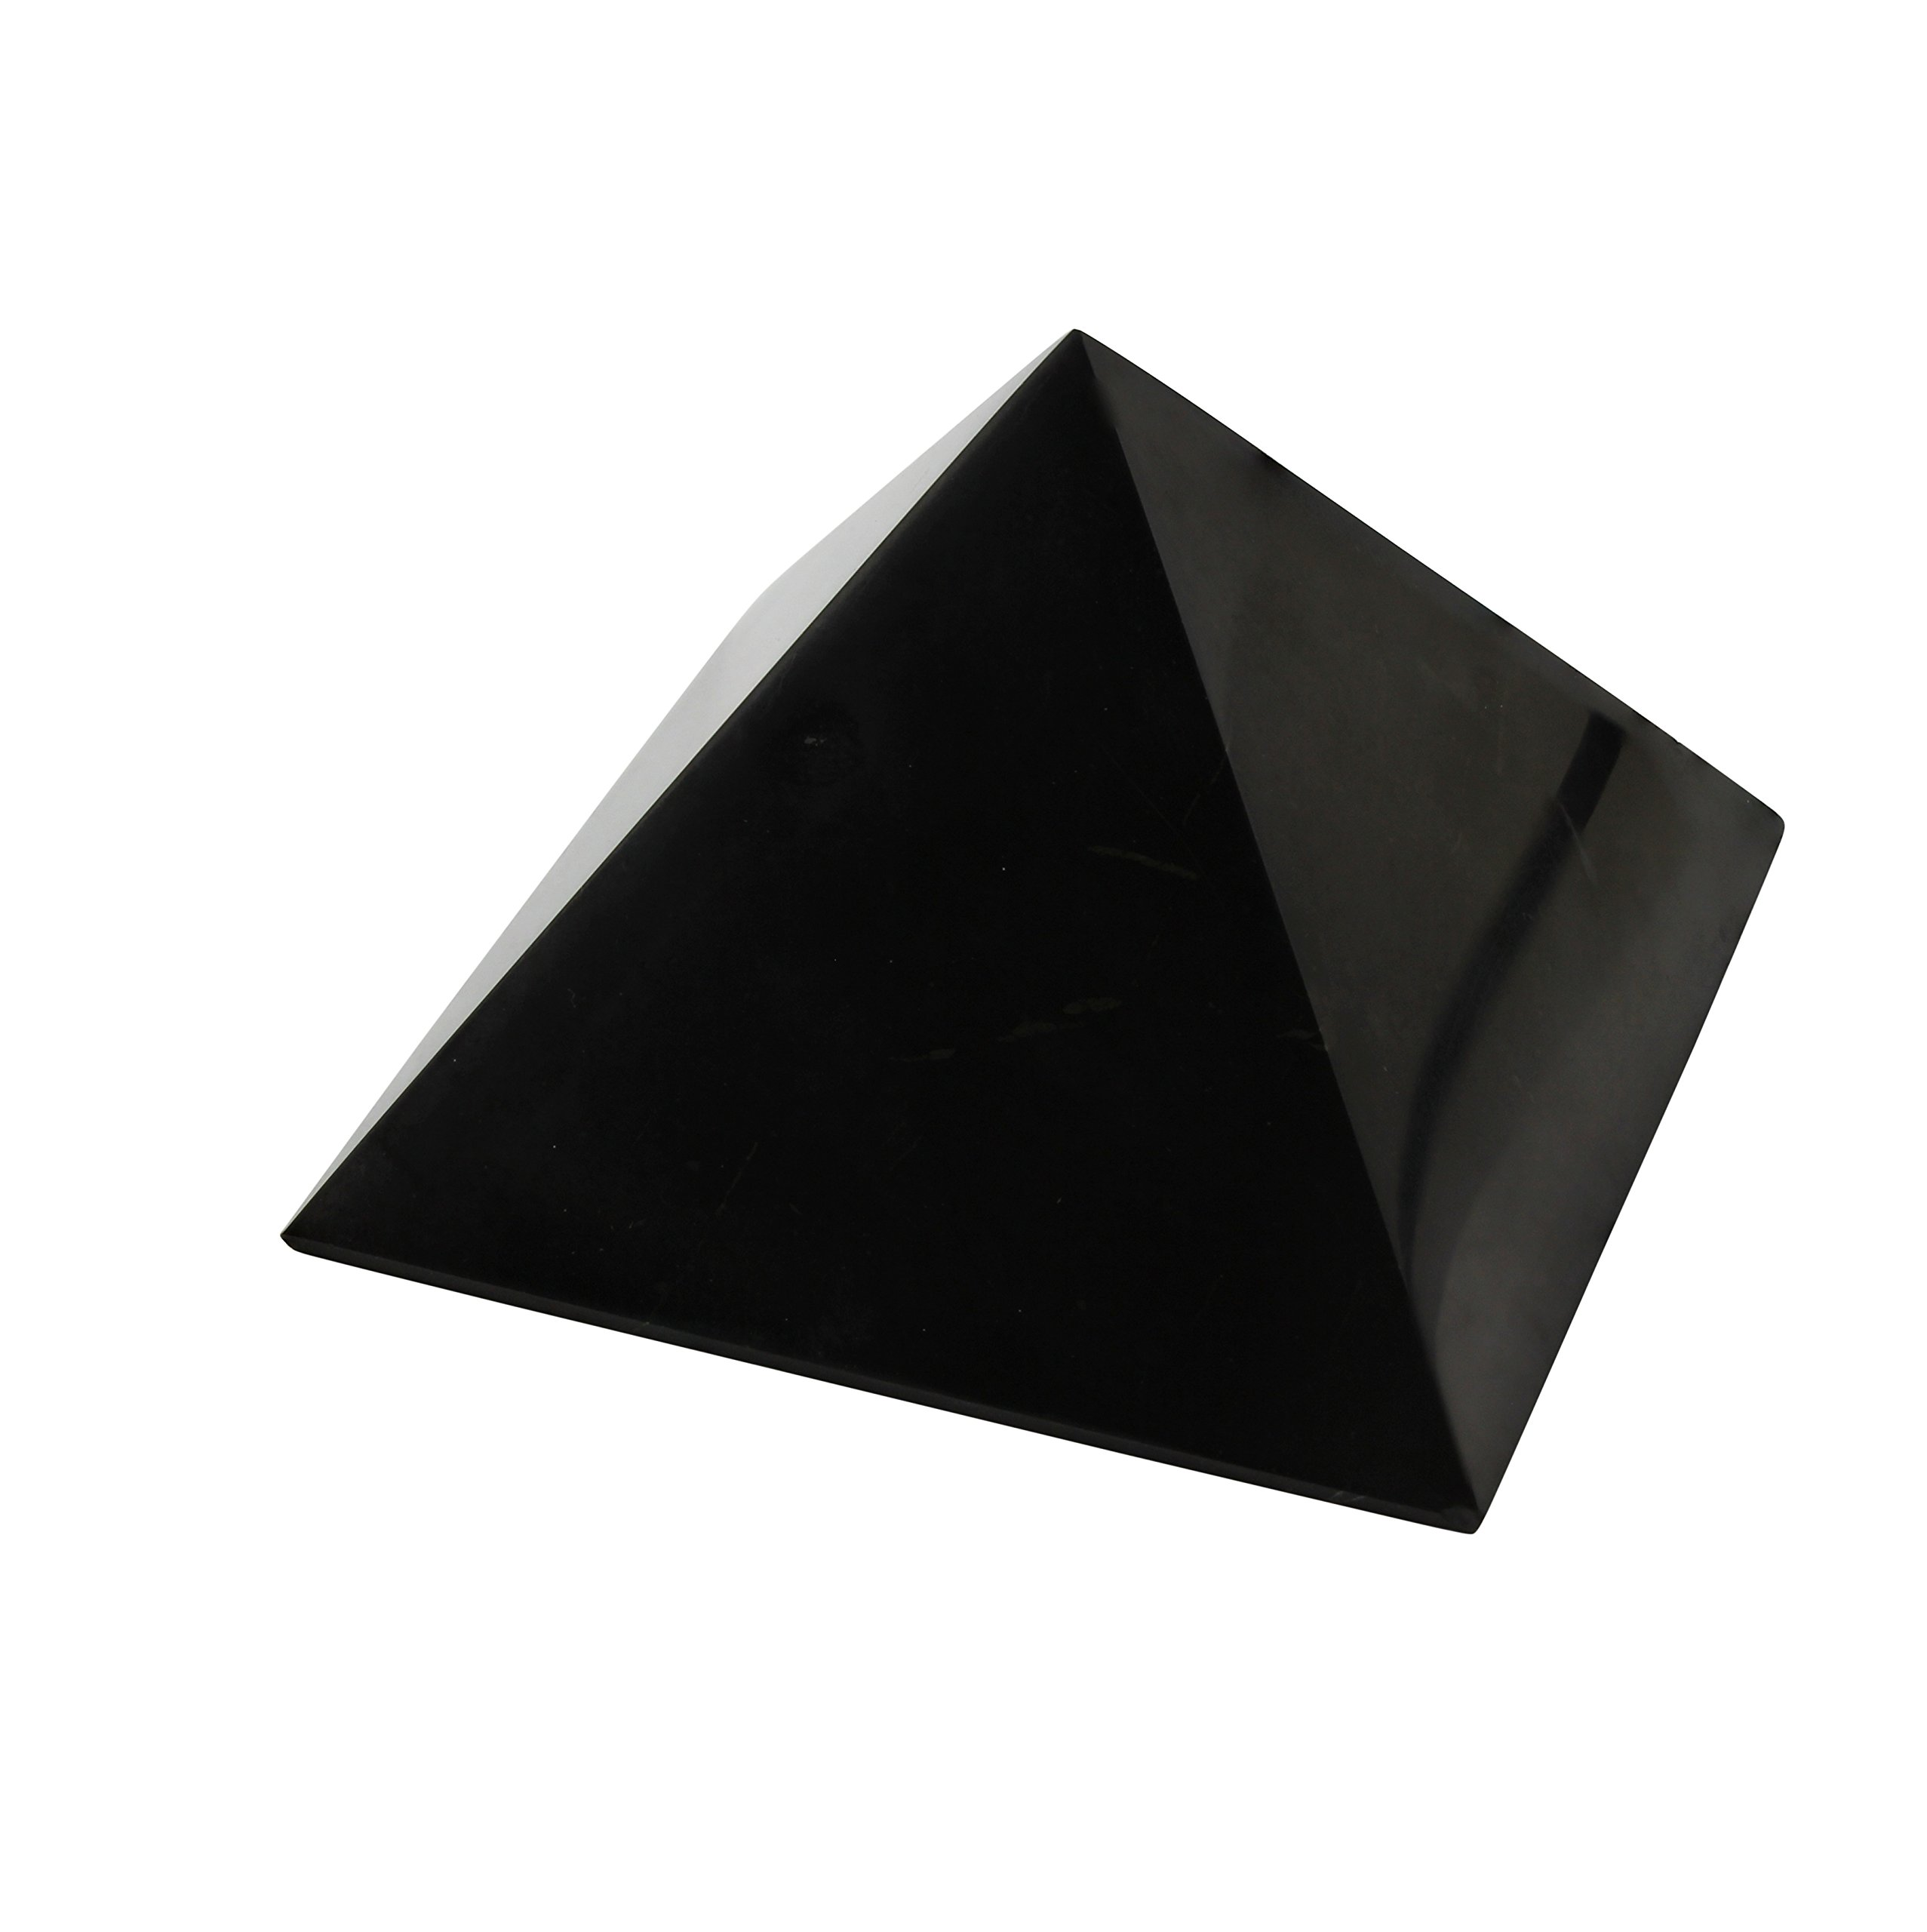 Shungite Pyramid 8 cm (3.15''): Guaranteed Authentic Highest Quality Russian Natural Healing Stone from Karelia - EMF Radiation Protection, Chakra Balancing, Handmade Decoration, Purification Stones